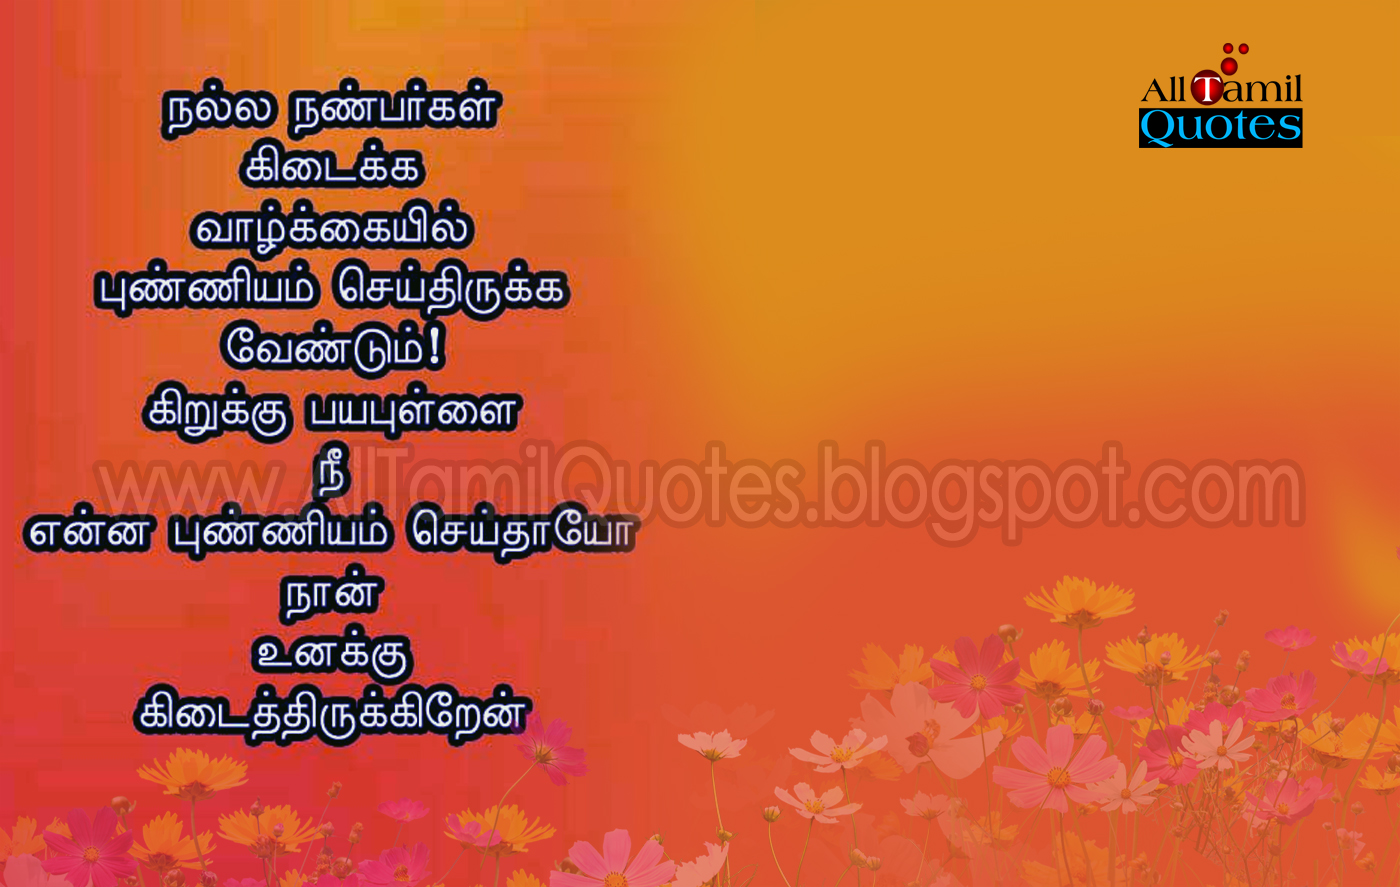 Tamil Quotes And Images About Friendship Thoughts And Feelings